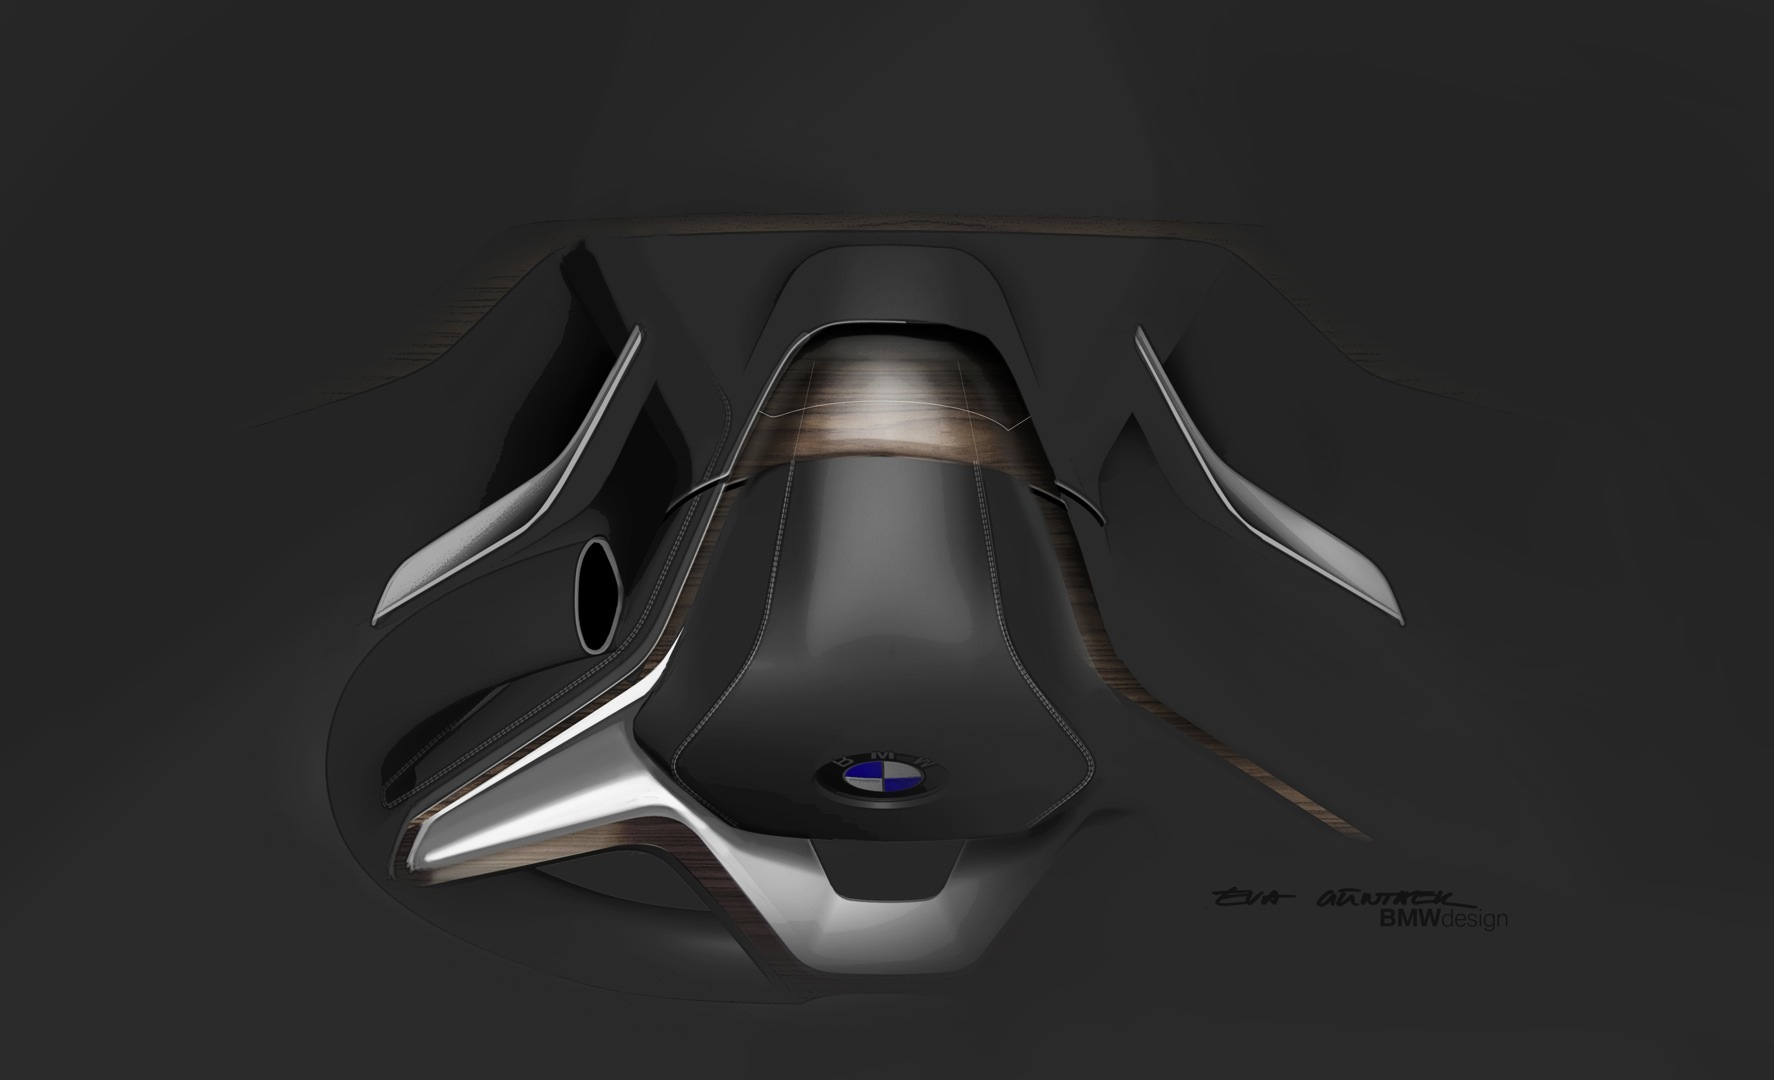 Pebble Beach Car Show >> BMW Vision Future Luxury Set for North American Debut at 2014 Pebble Beach - autoevolution